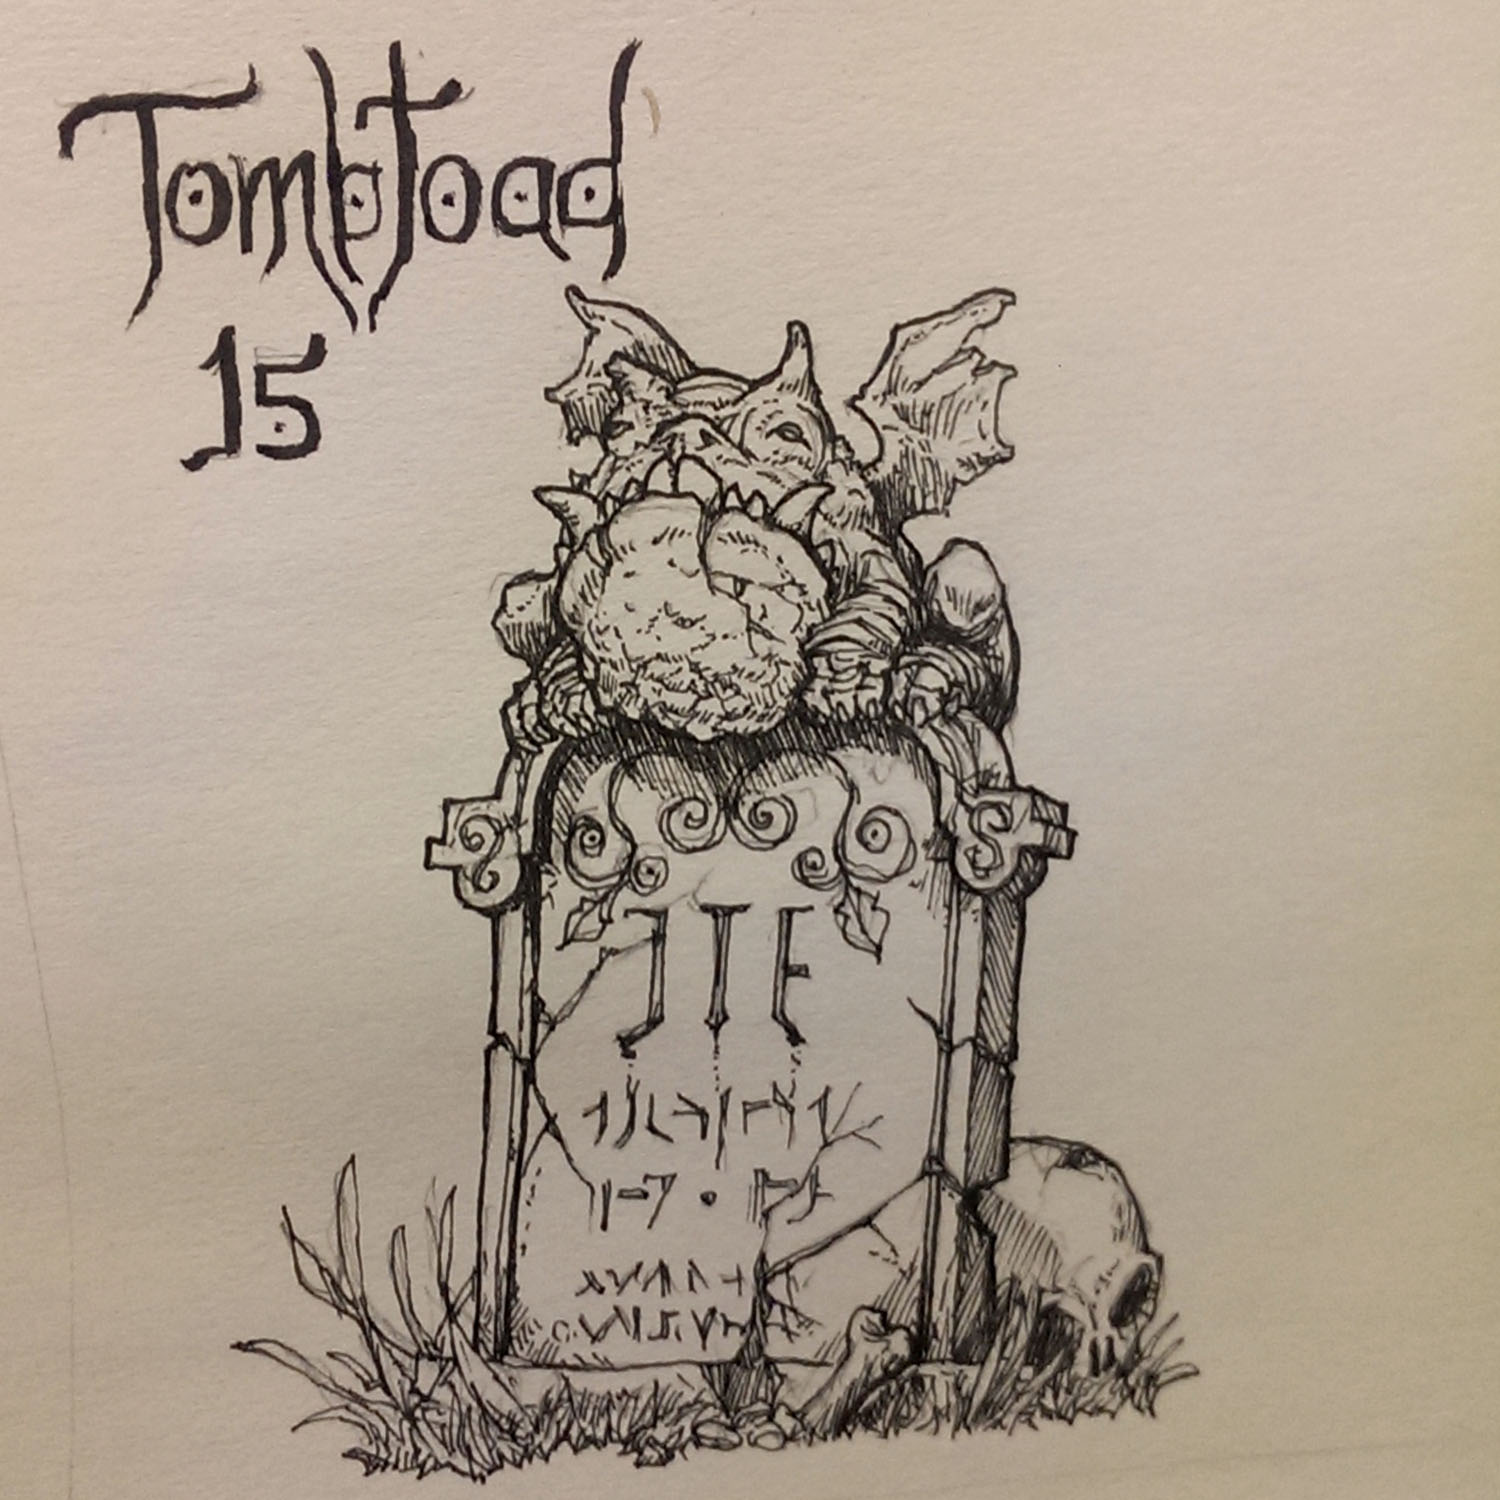 Inktober 15 Tombtoad by butterfrog